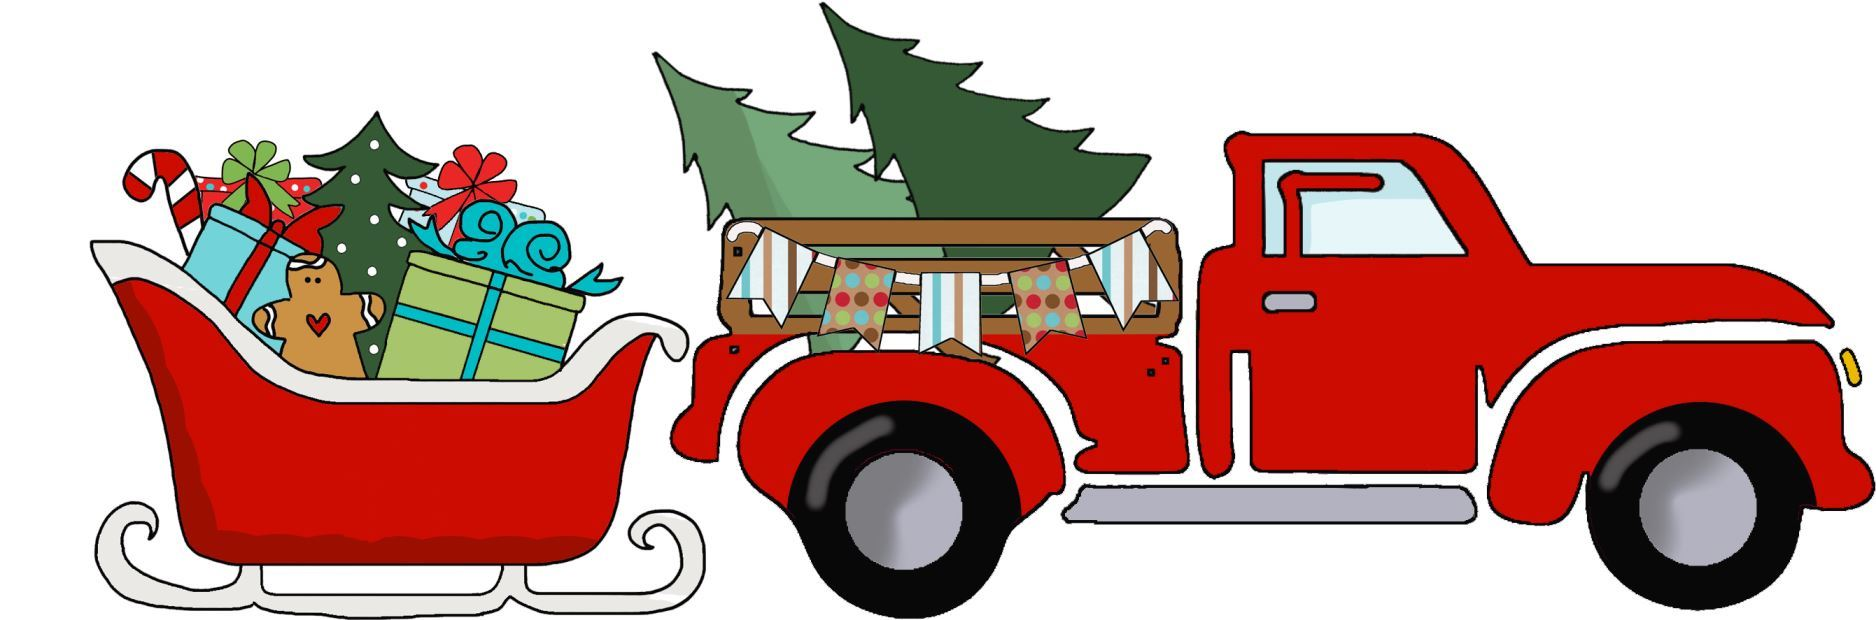 Red Truck Christmas - Red Truck Pulling Sleigh Full of Gifts